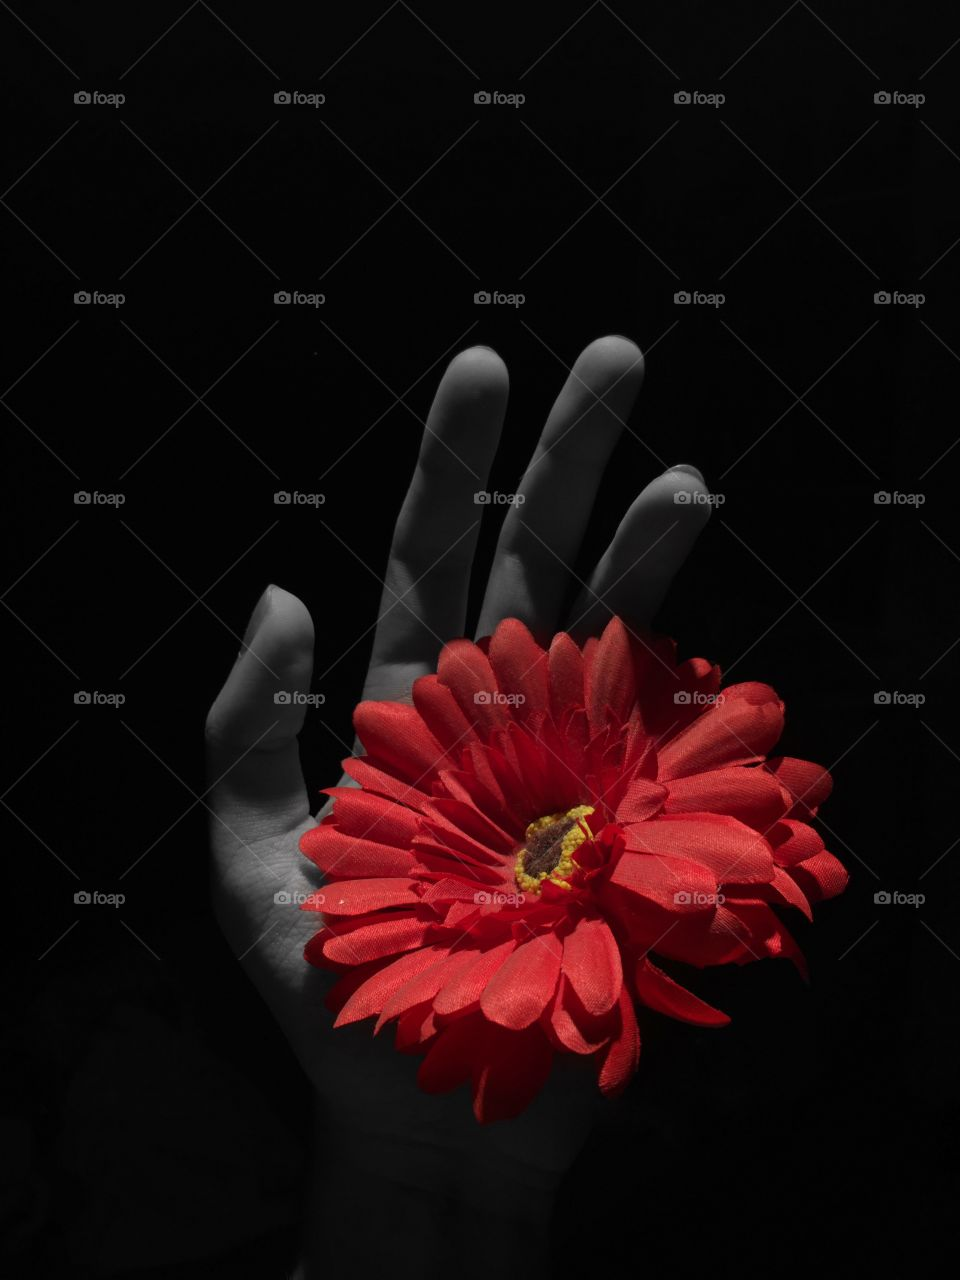 Gerbera flower. Coloursplash with black and white background.